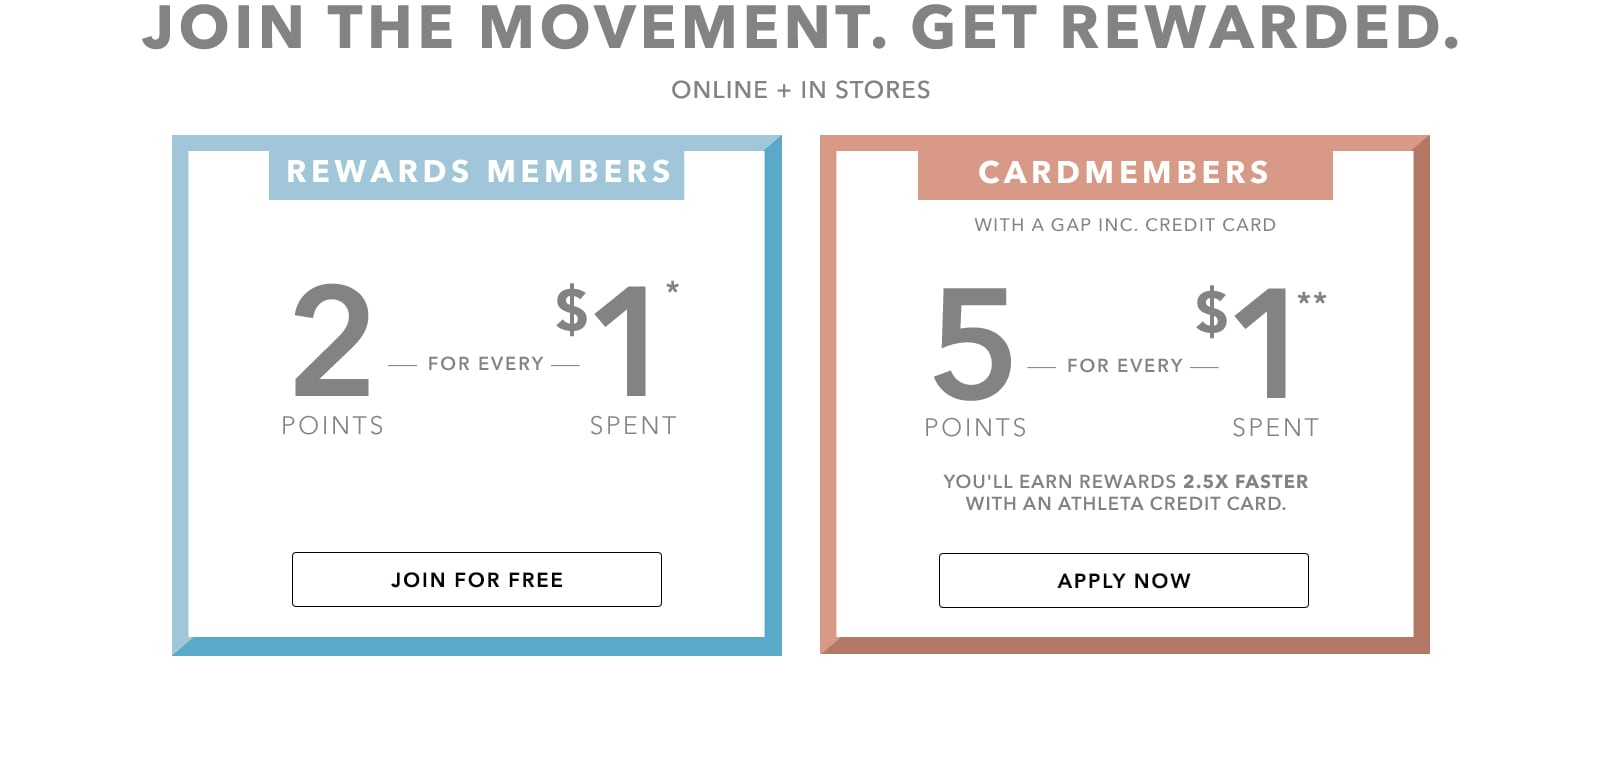 Join the movement. Get rewarded. Online and in stores.